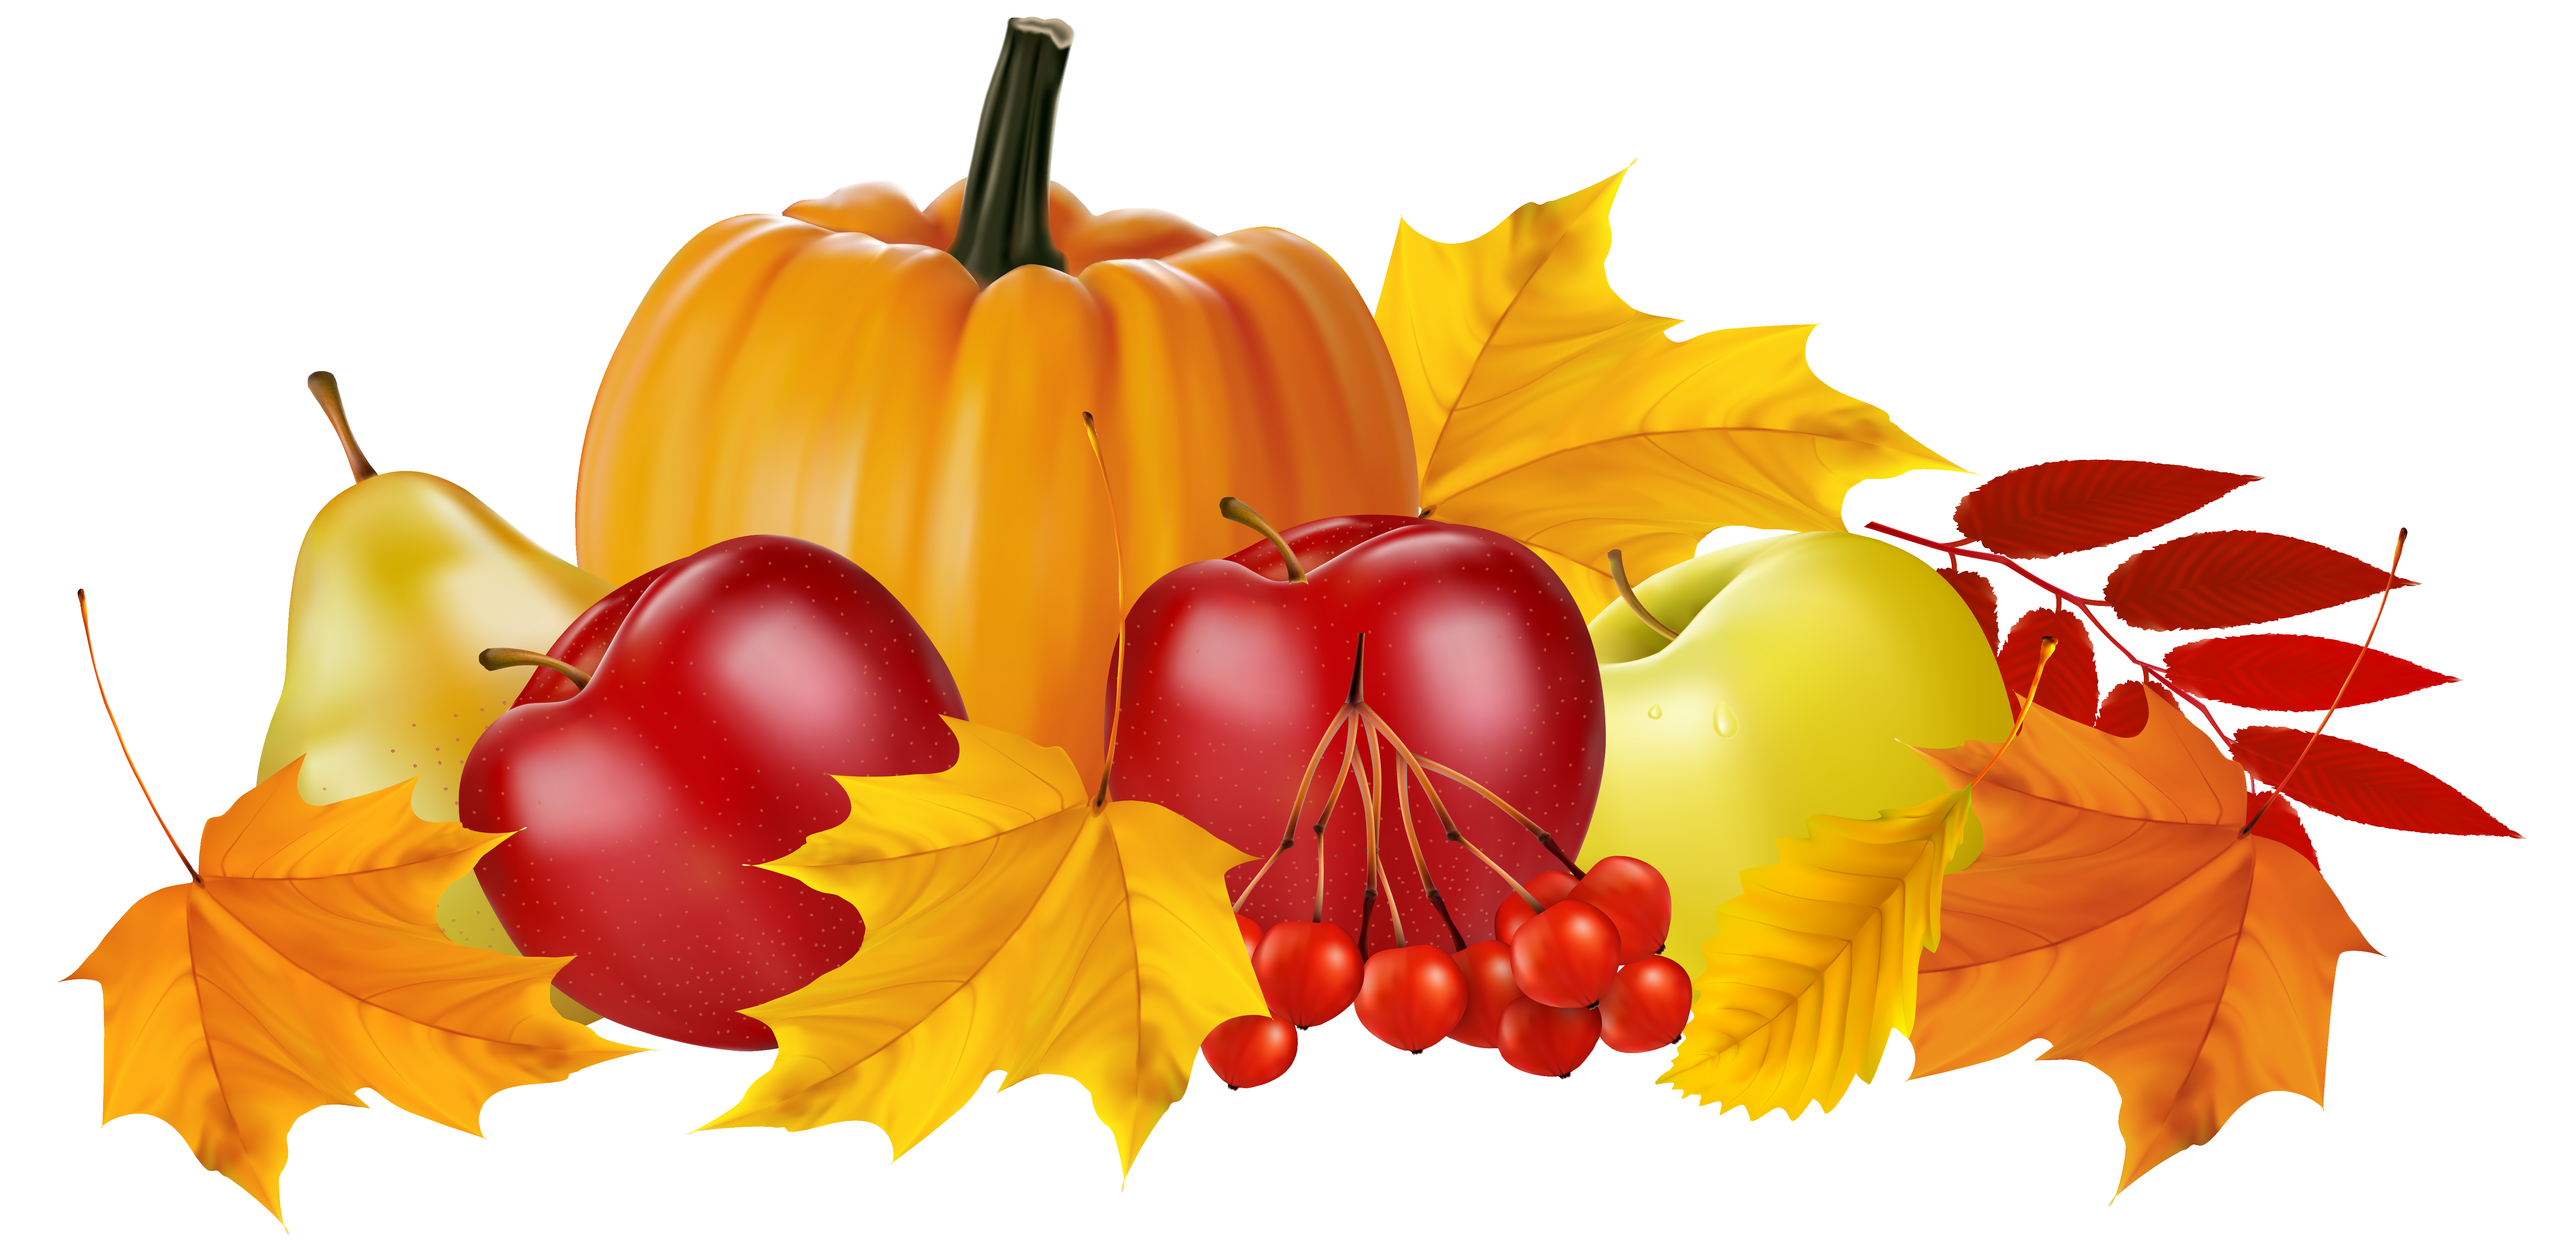 Autumn Pumpkin and Fruits PNG Clipart Image.